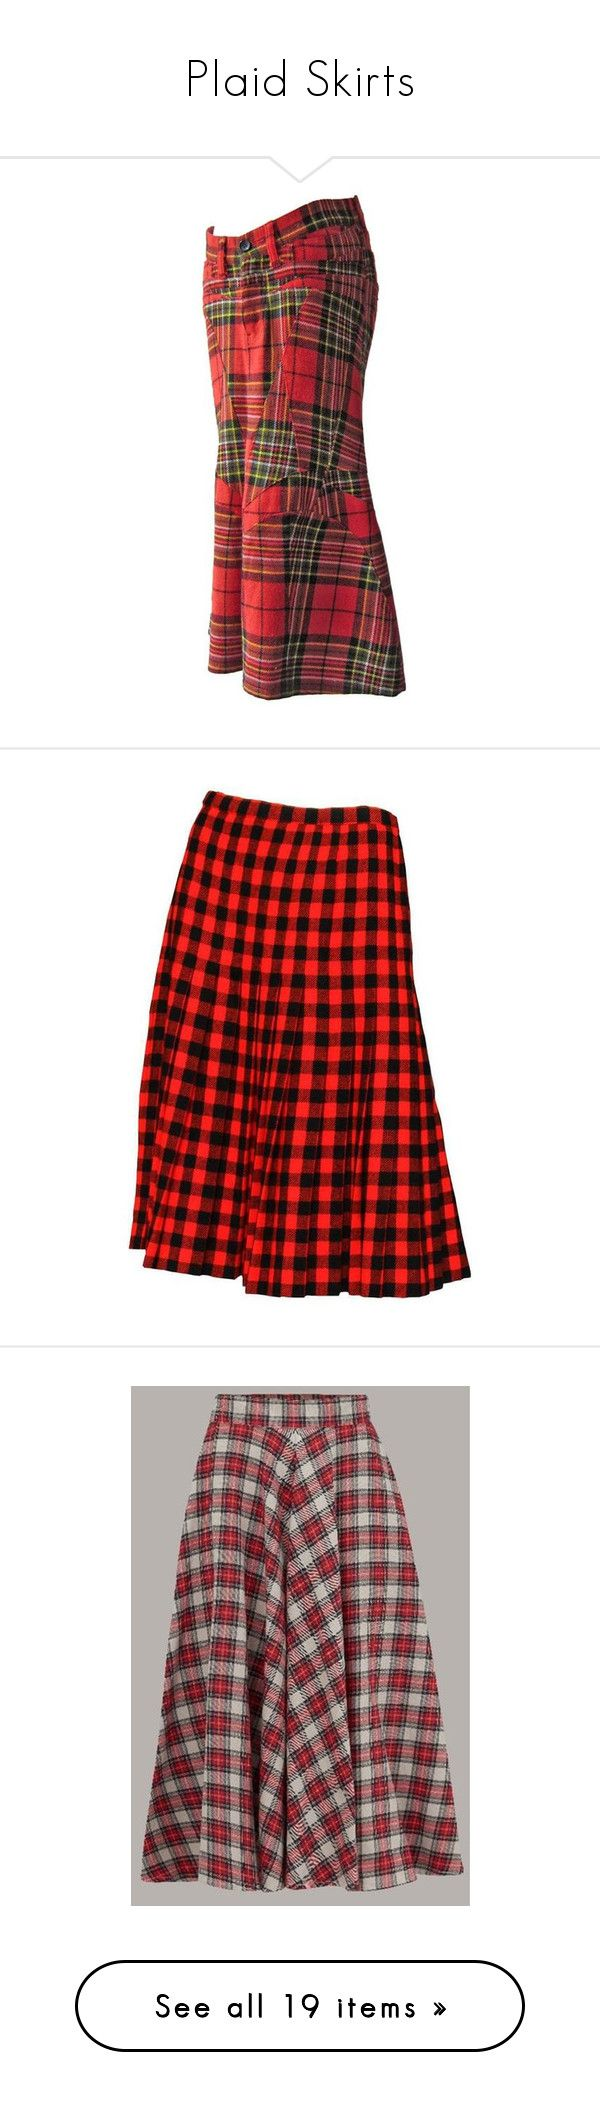 """Plaid Skirts"" by ravenleeart ❤ liked on Polyvore featuring skirts, pencil skirts, red, red tartan skirt, red tartan plaid skirt, plaid pencil skirt, tartan pencil skirt, comme des garçons skirts, wool pleated skirt and woolen skirt"